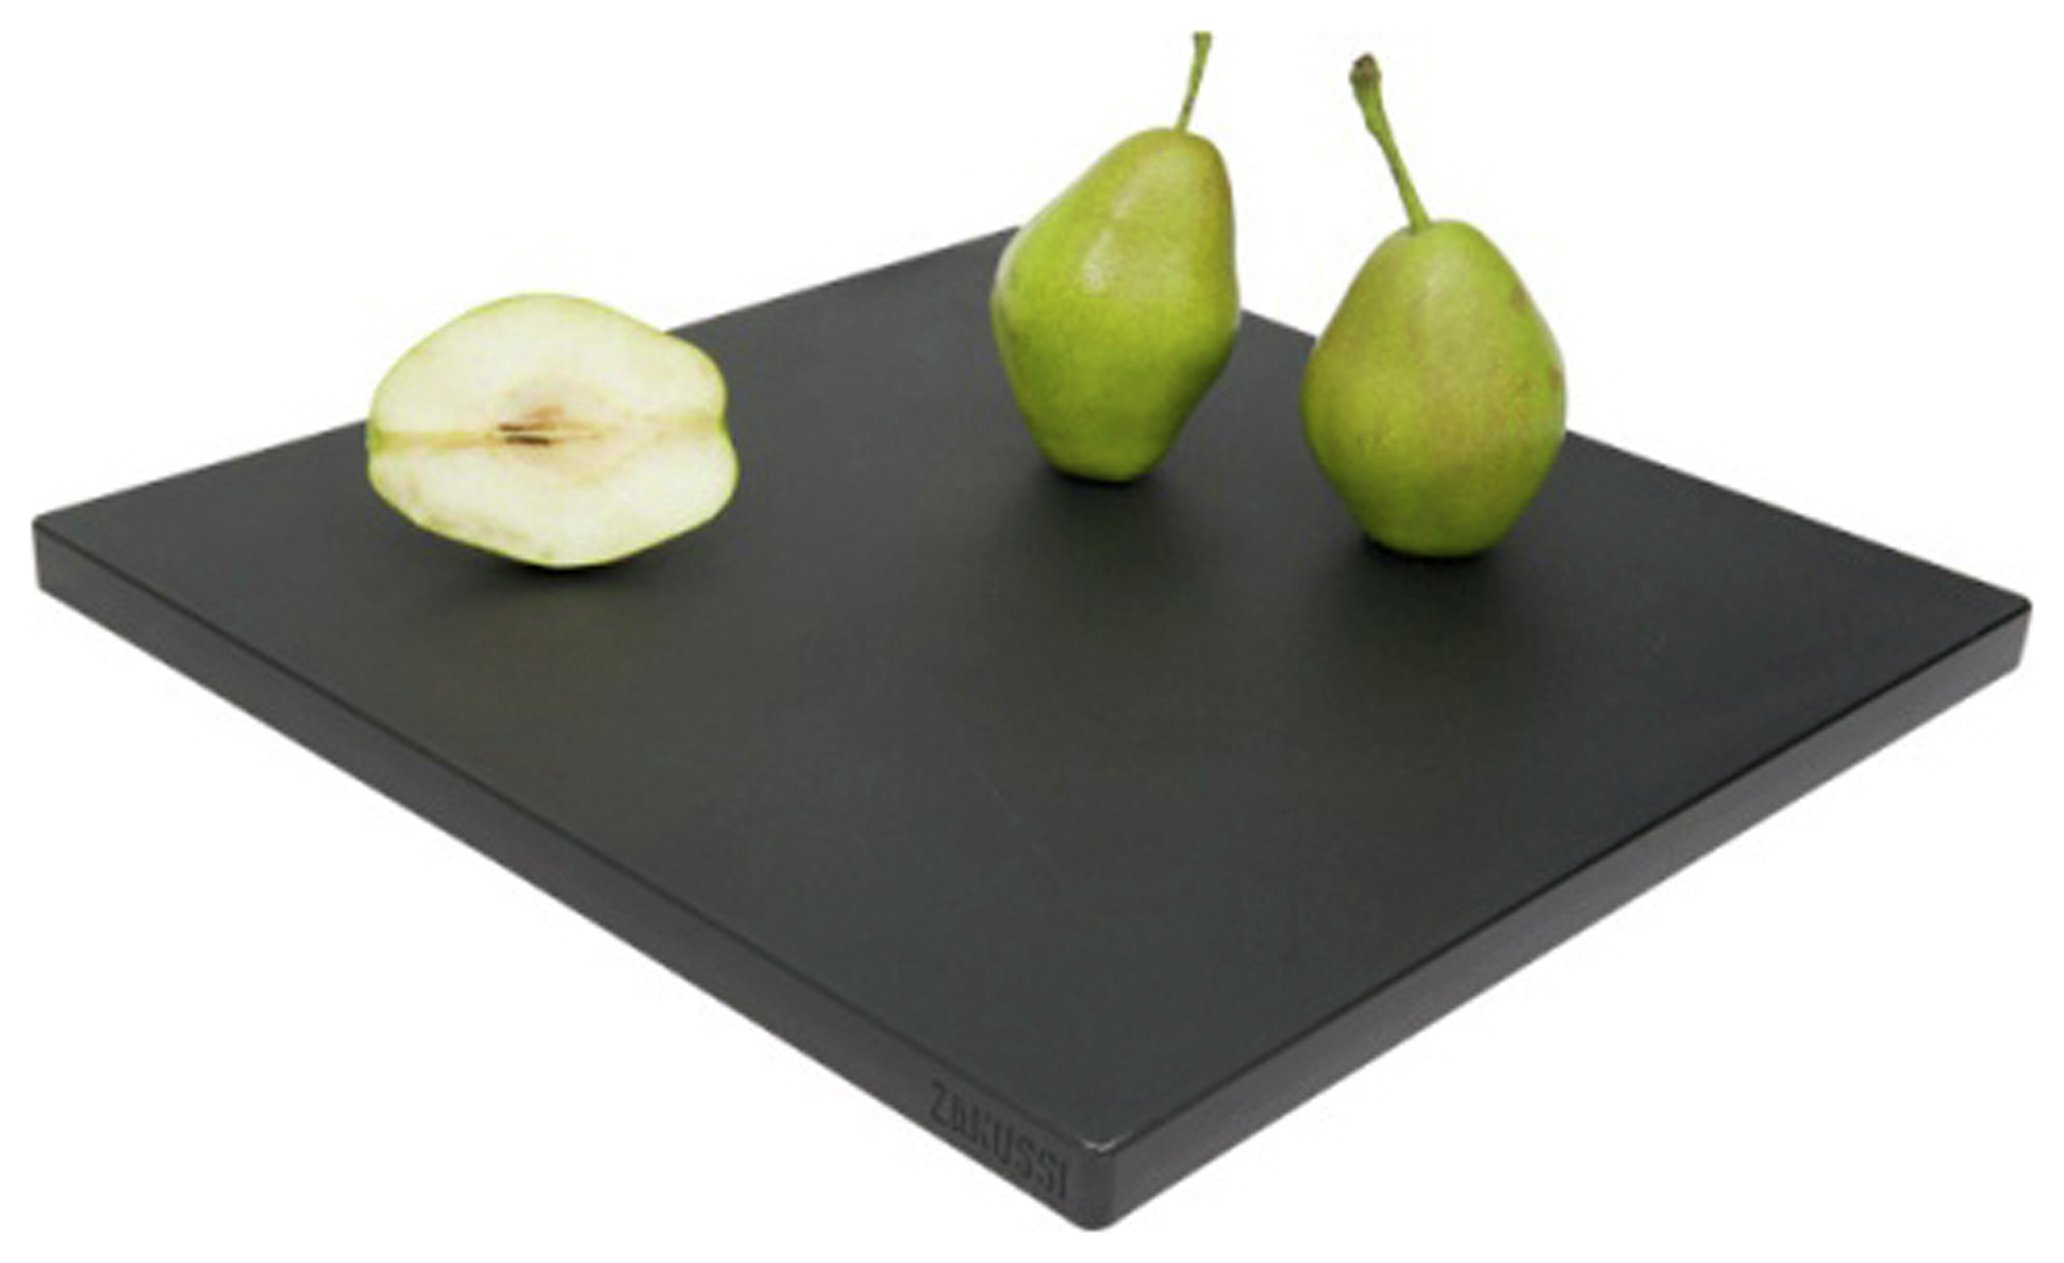 Zanussi Polyethylene Cutting Board - Black